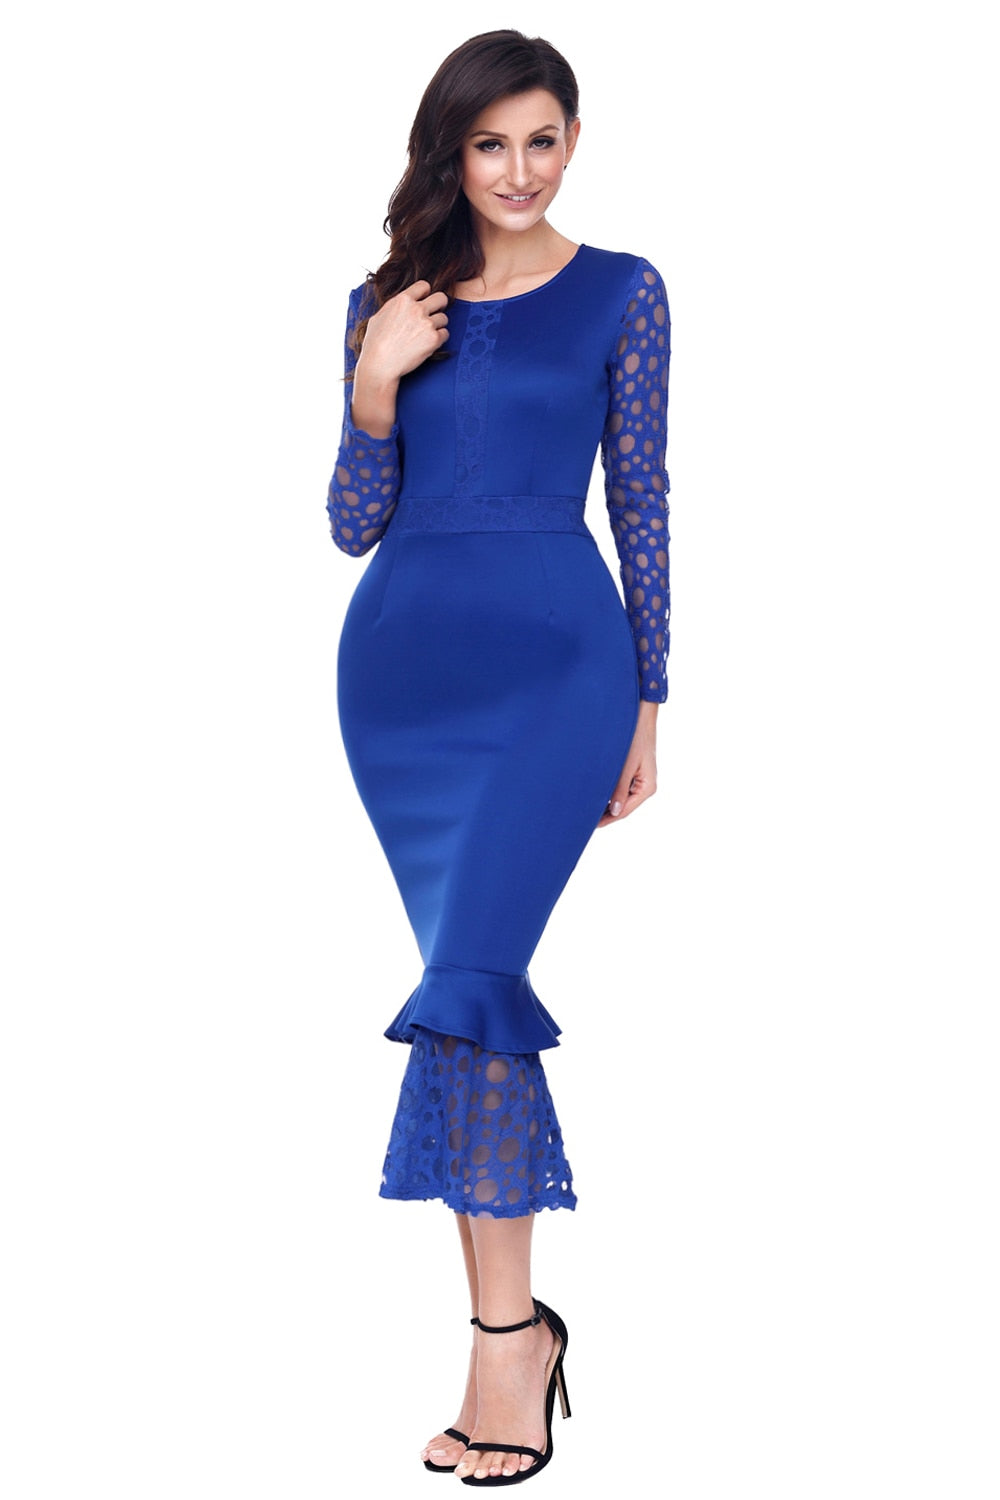 Hollow-out Long Sleeve Ruffle Bodycon Midi Dress Vestidos Vintage